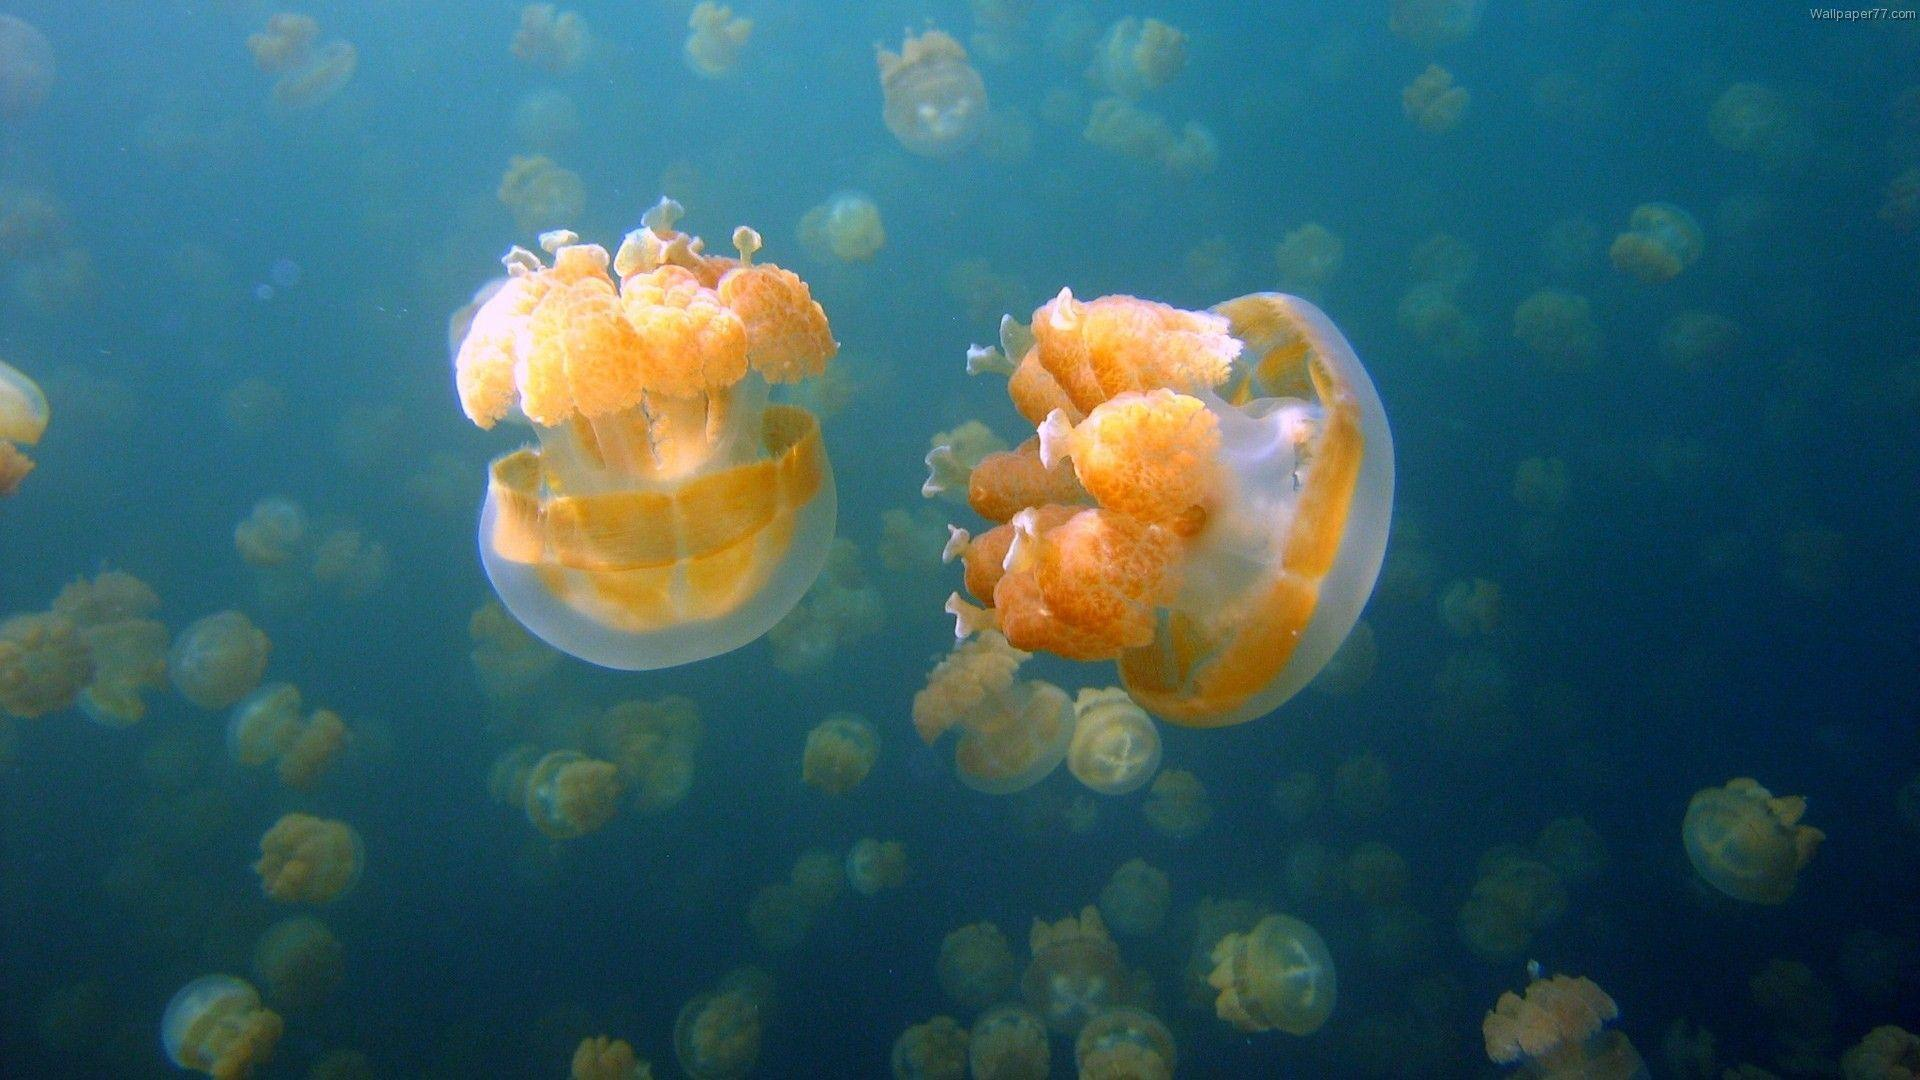 pictures of jelly fish